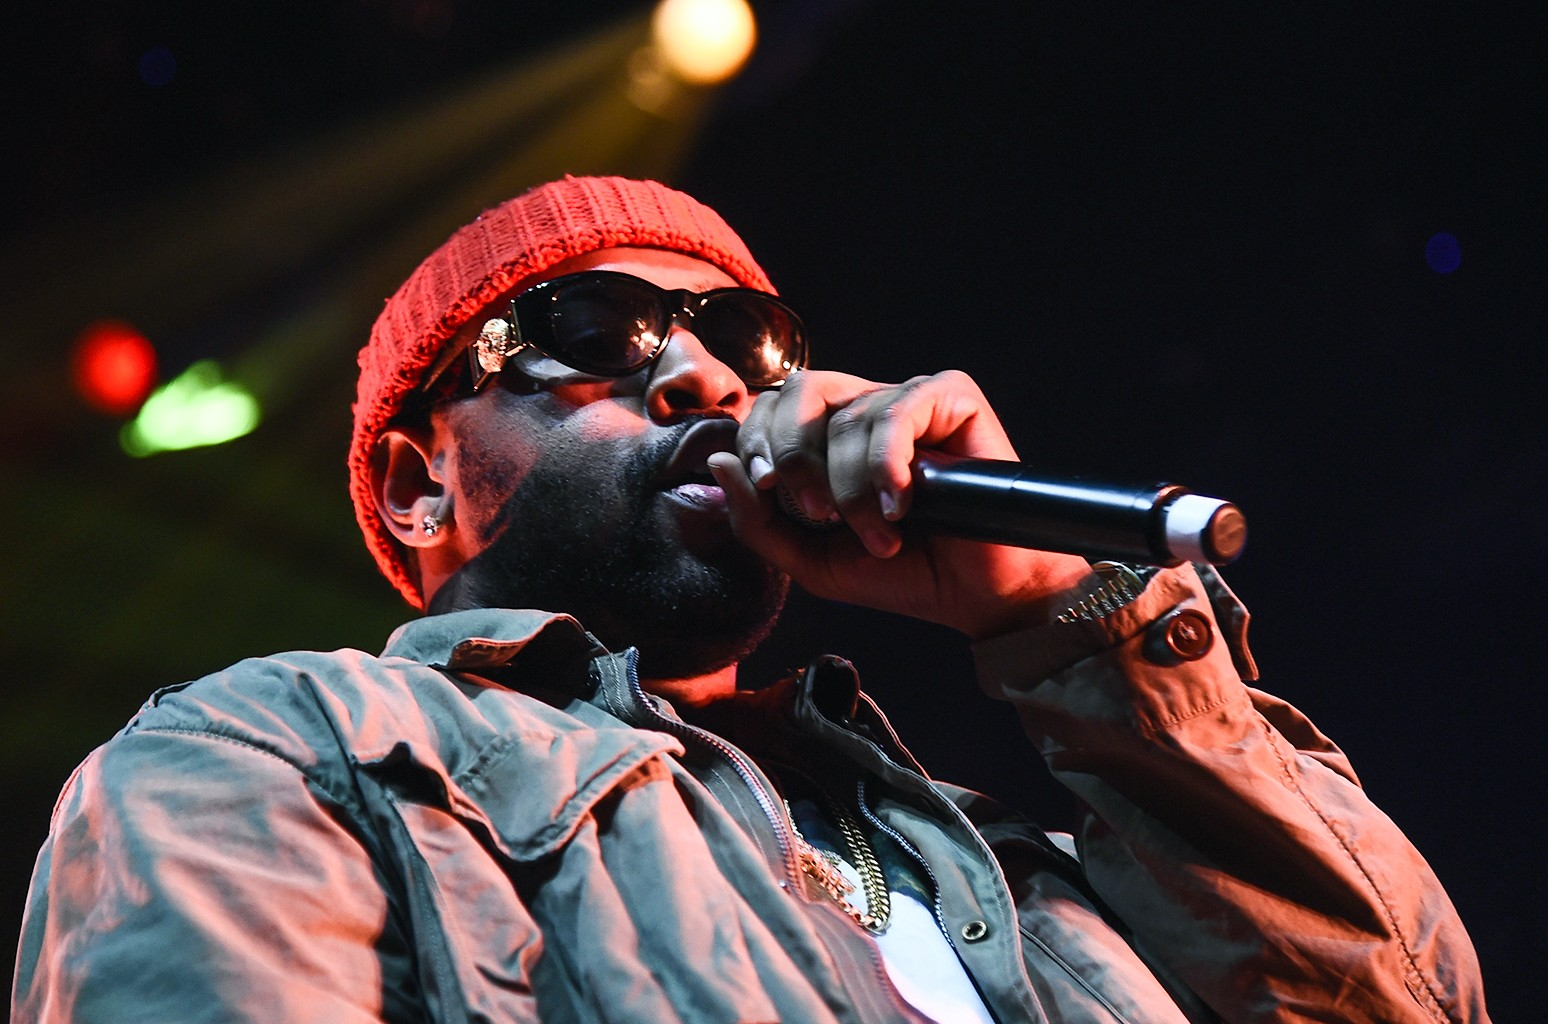 Mike Will Made-It performs at Moody Theatre on March 20, 2015 in Austin, Texas.